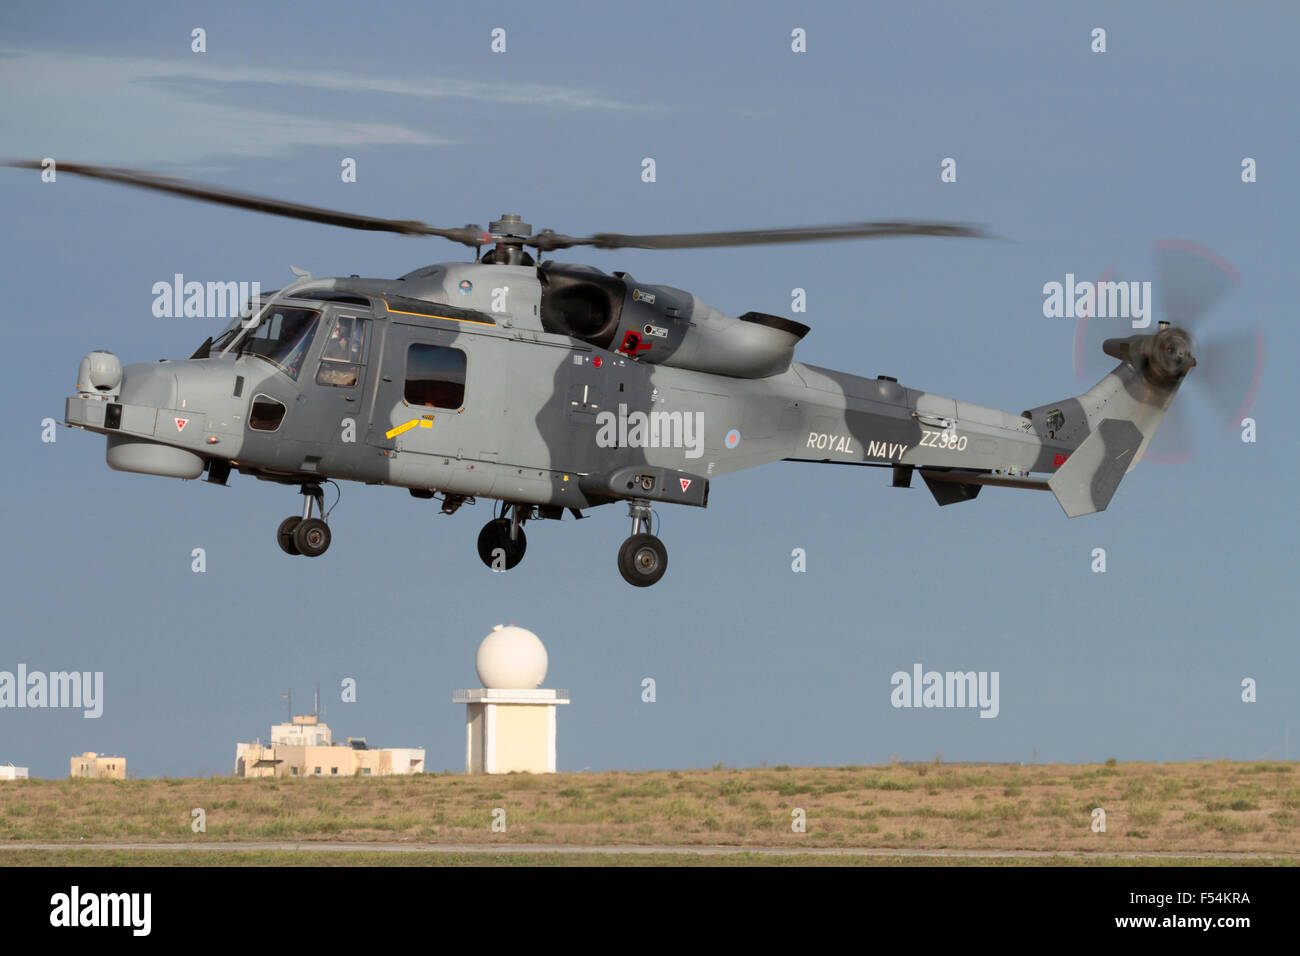 AgustaWestland AW159 Wildcat HMA2 military helicopter of Britain's Royal Navy hovering in the air - Stock Image